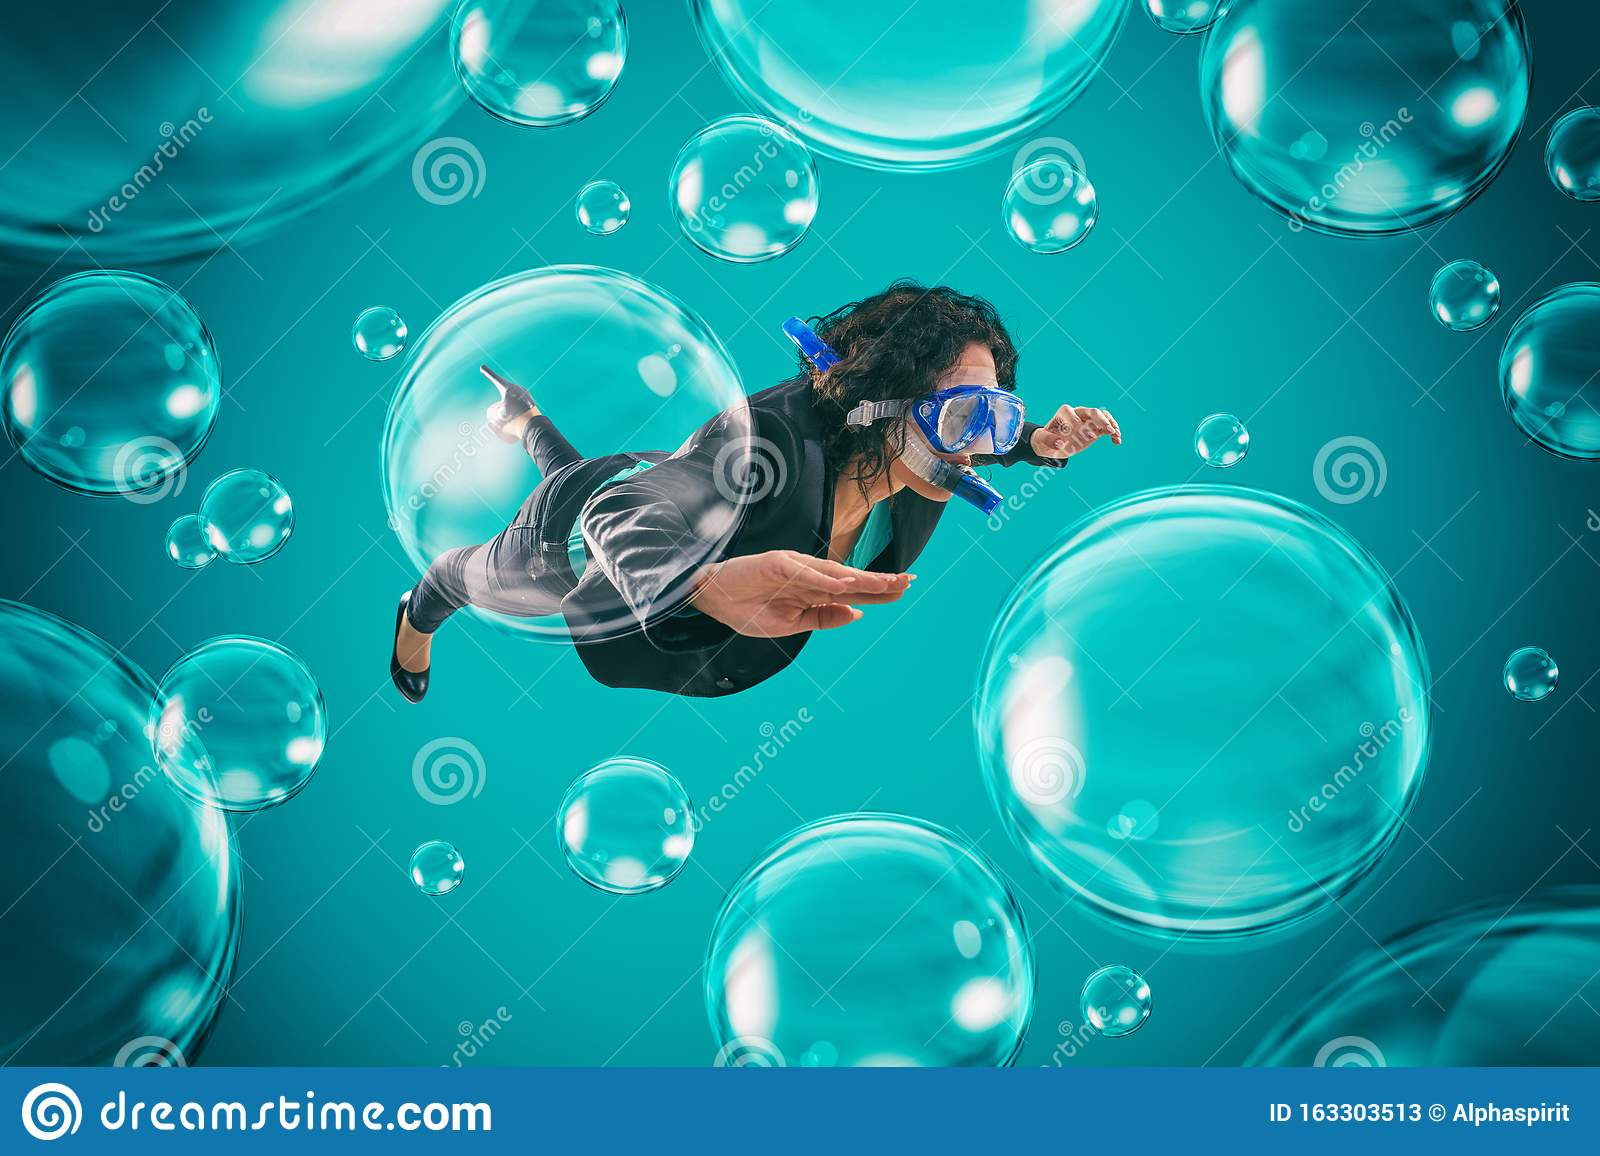 Woman swimming among air bubbles with mask and snorkel in a deep turquoise background